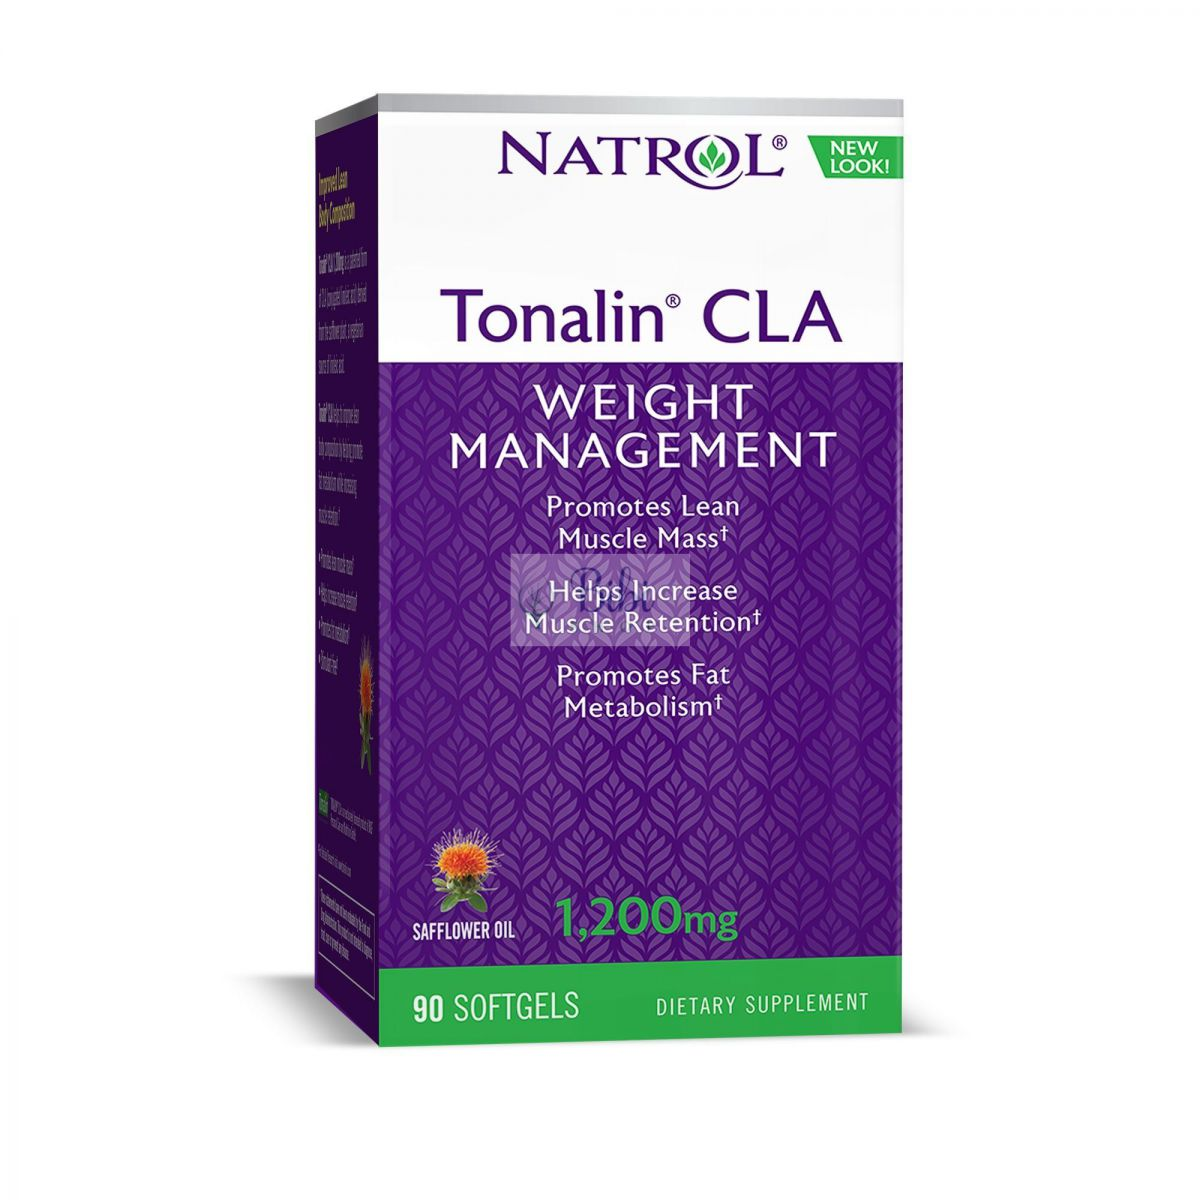 vien-uong-giam-can-natrol-tonalin-cla-safflower-oil